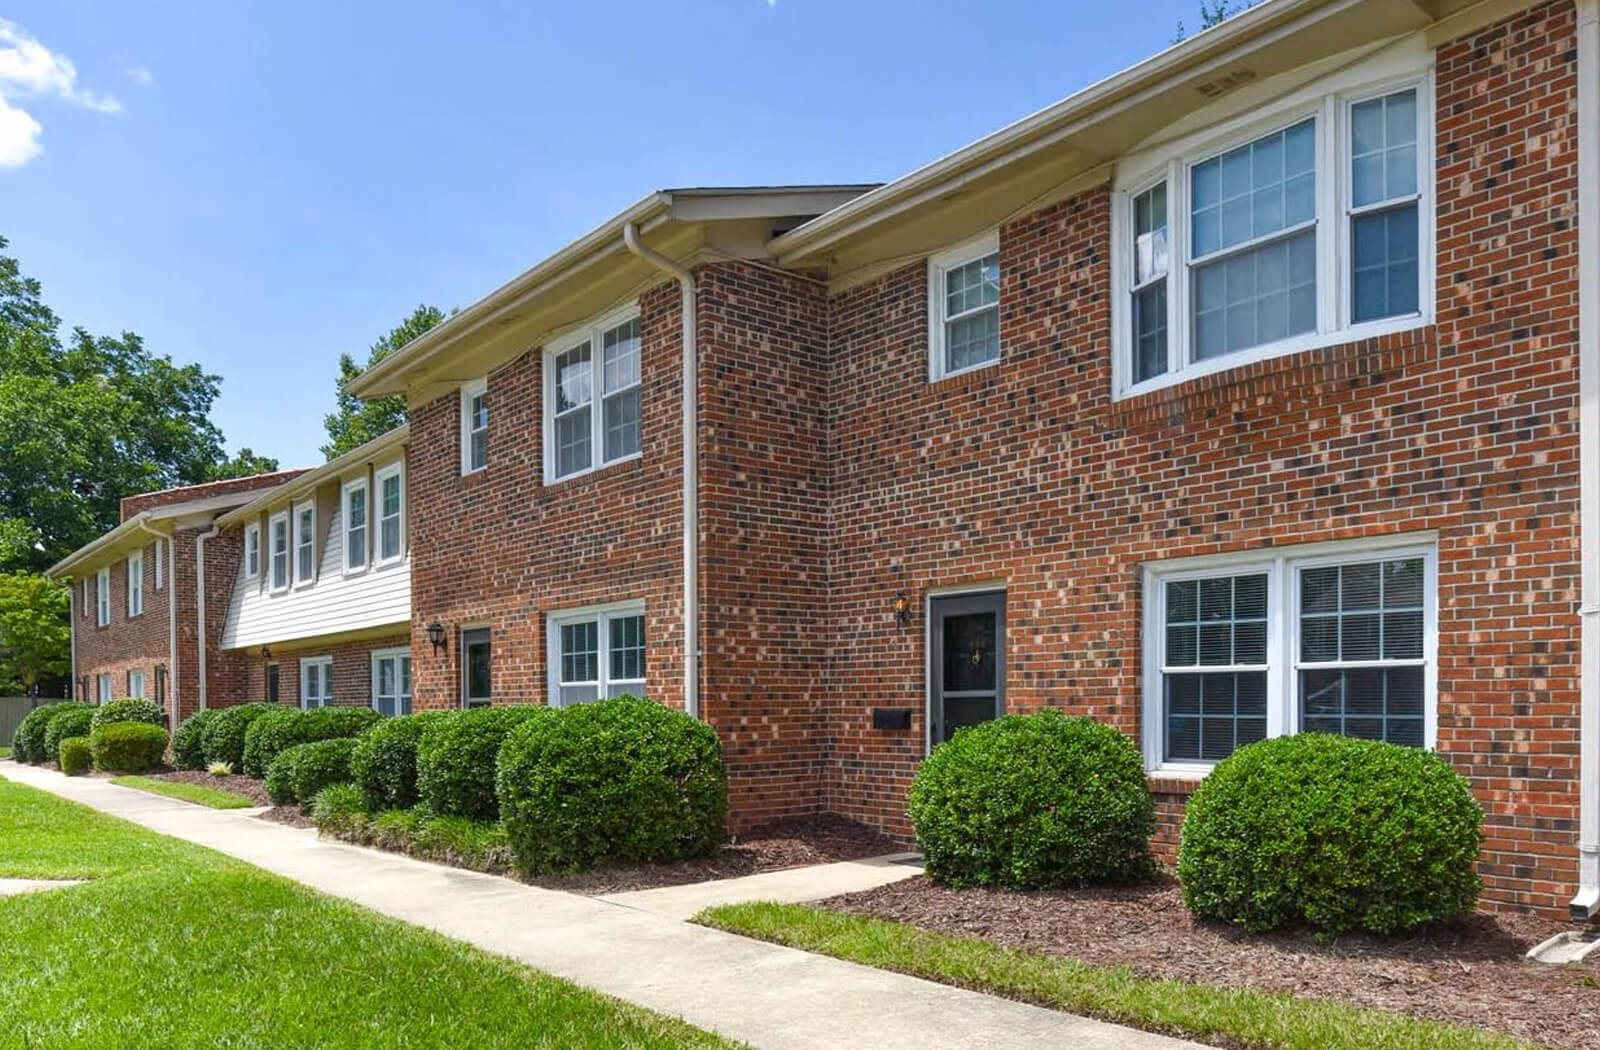 Apartments in Wilmington NC for rent